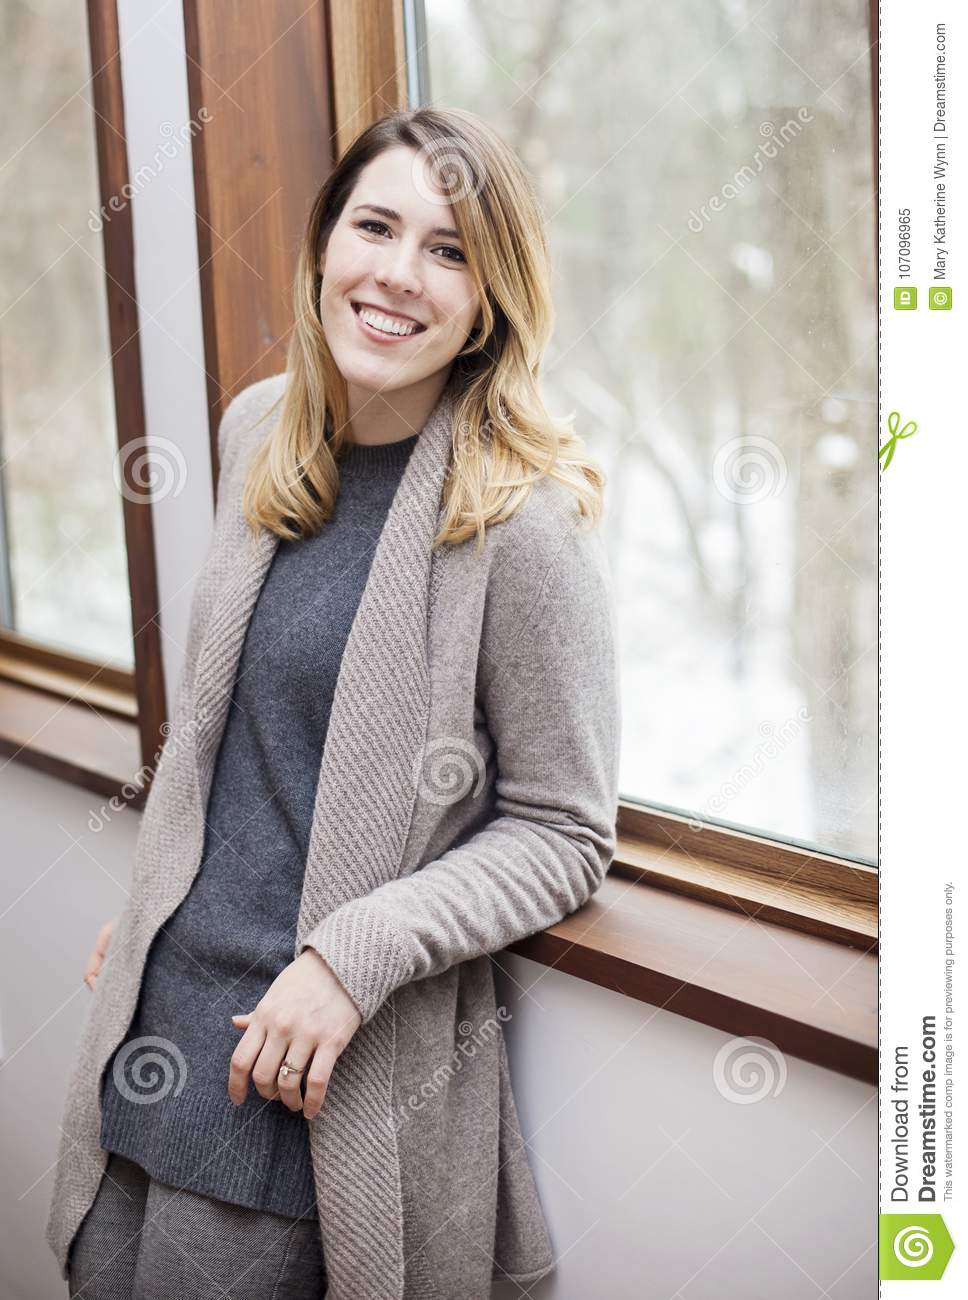 Young woman relaxing indoors in winter